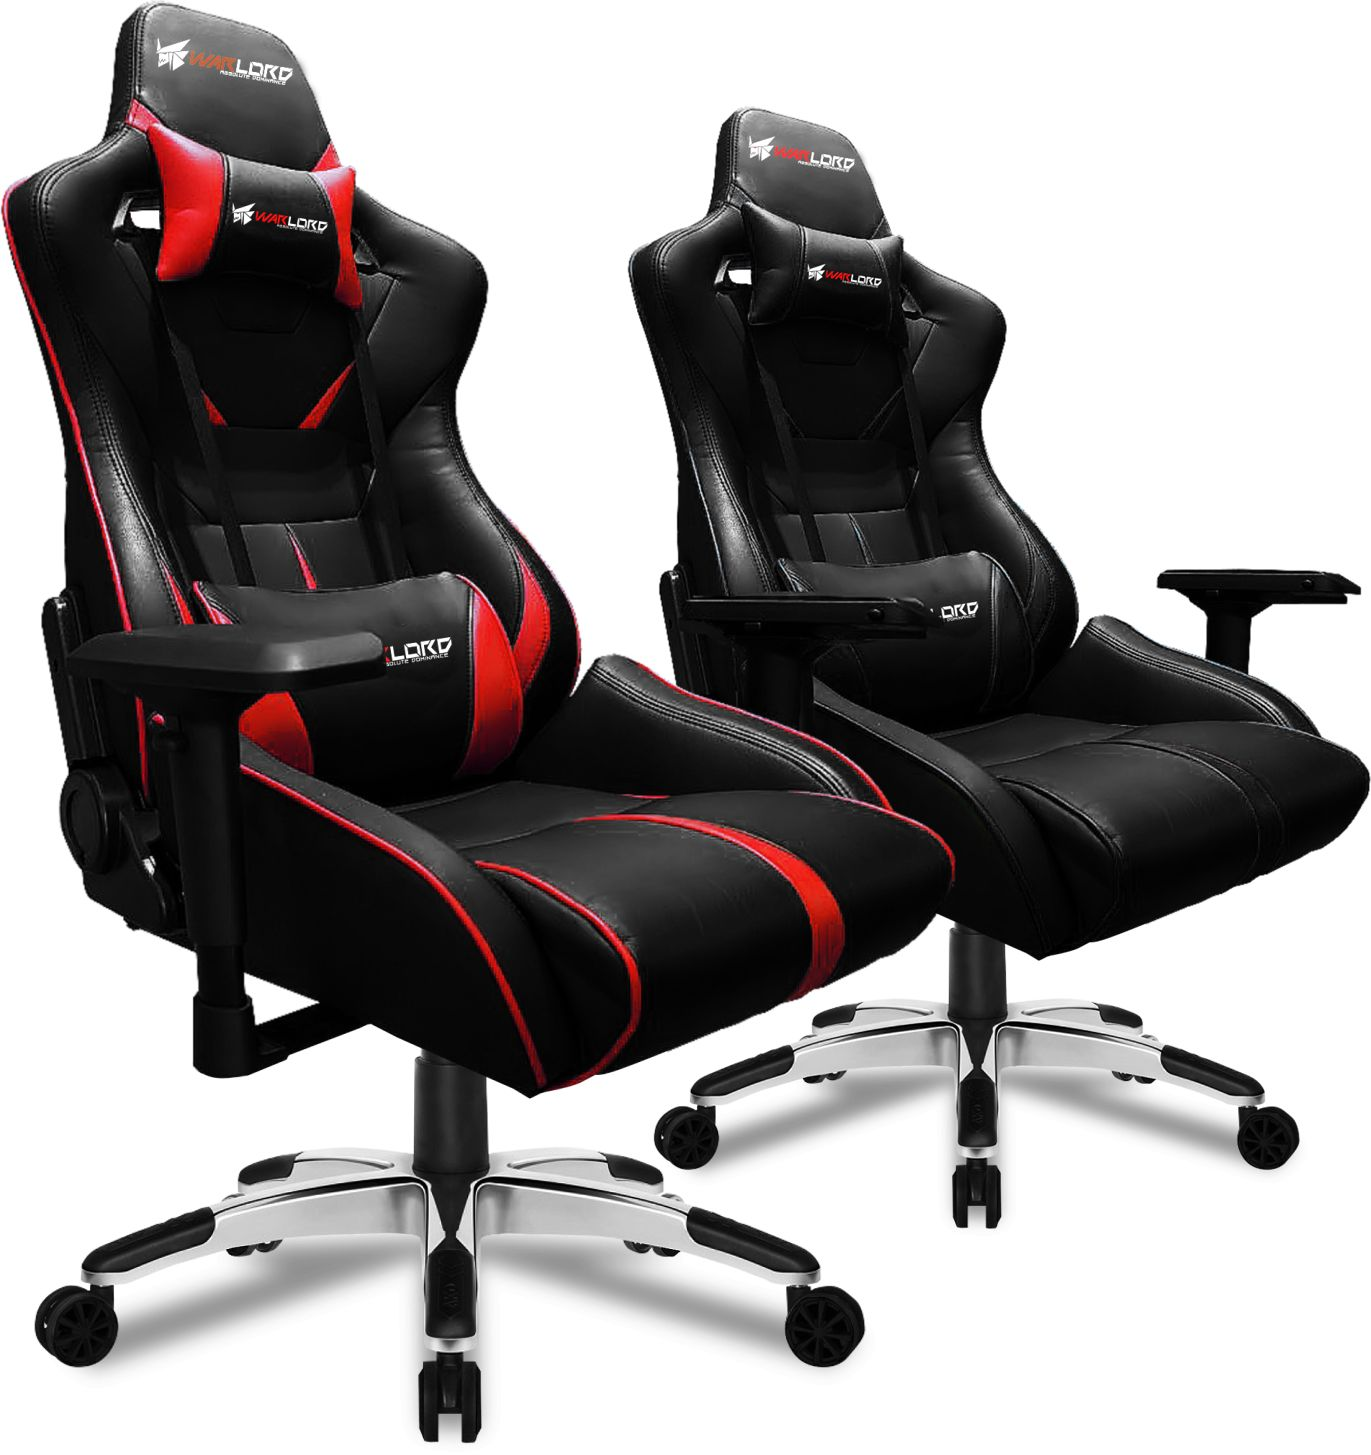 Gaiming Chair Gelid Warlord Templar Gaming Chairs